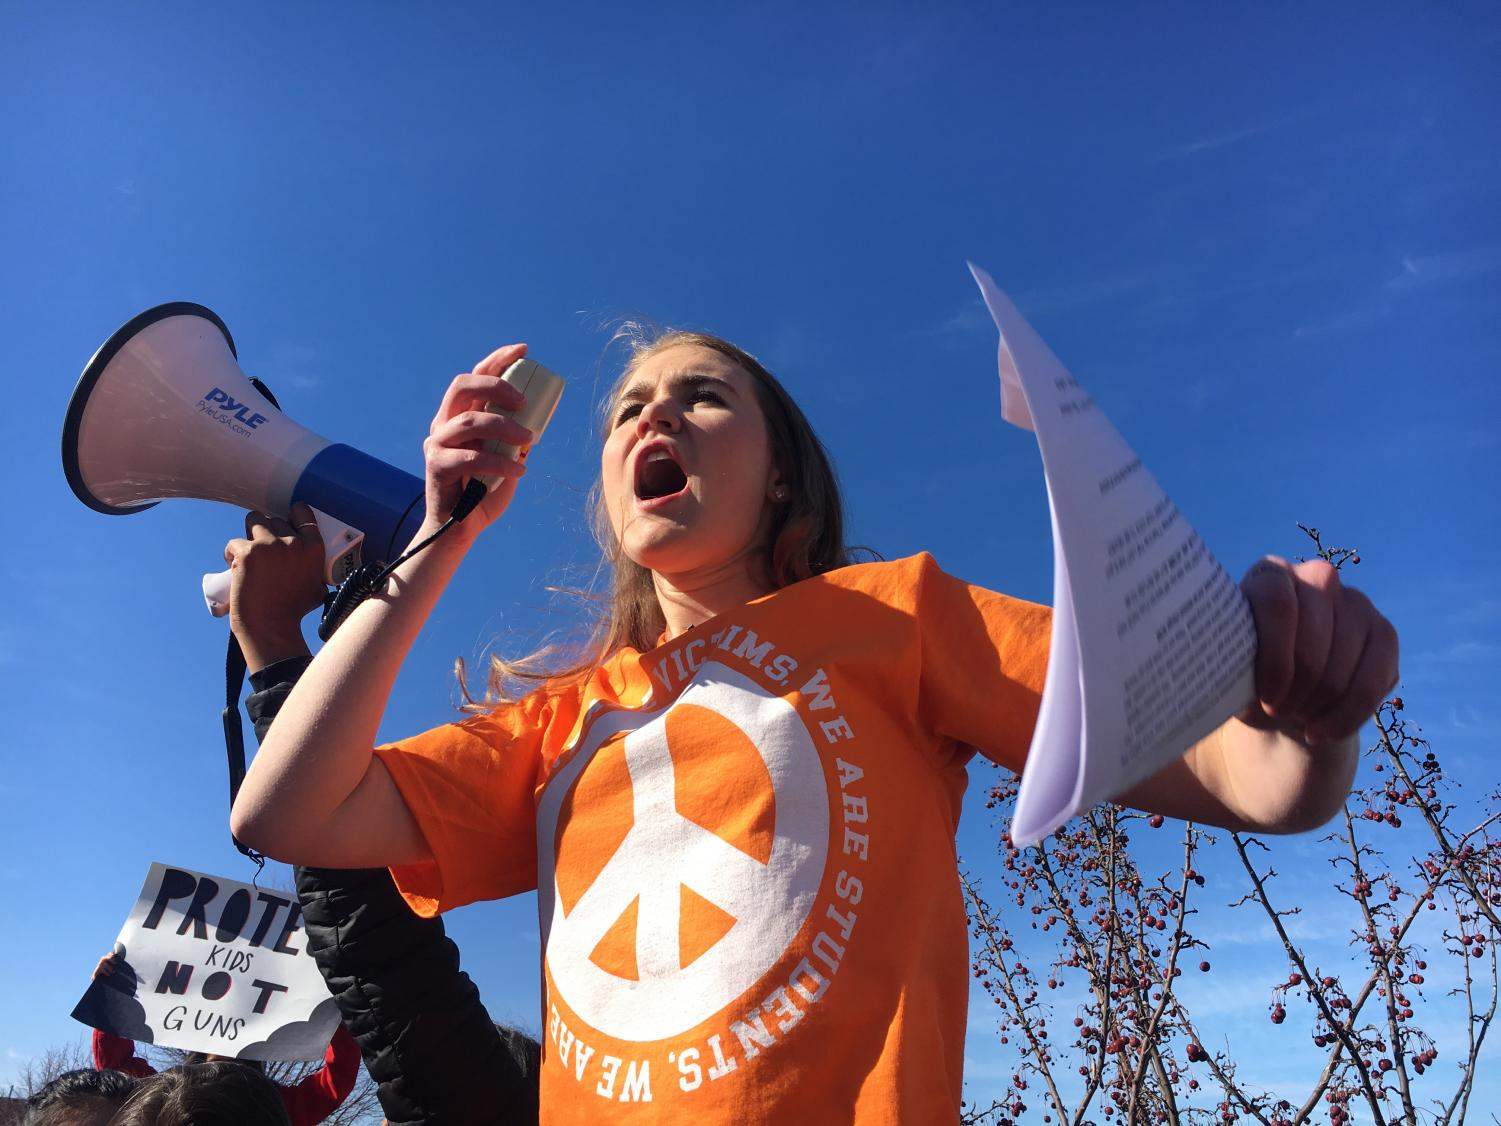 Alexa+Jordan%2C+organizer+and+advocate+of+the+Metea+Valley+student+walkout%2C+projects+her+voice+into+a+megaphone+to+gather+the+attention+of+the+hundreds+of+students+surrounding+her.%0A